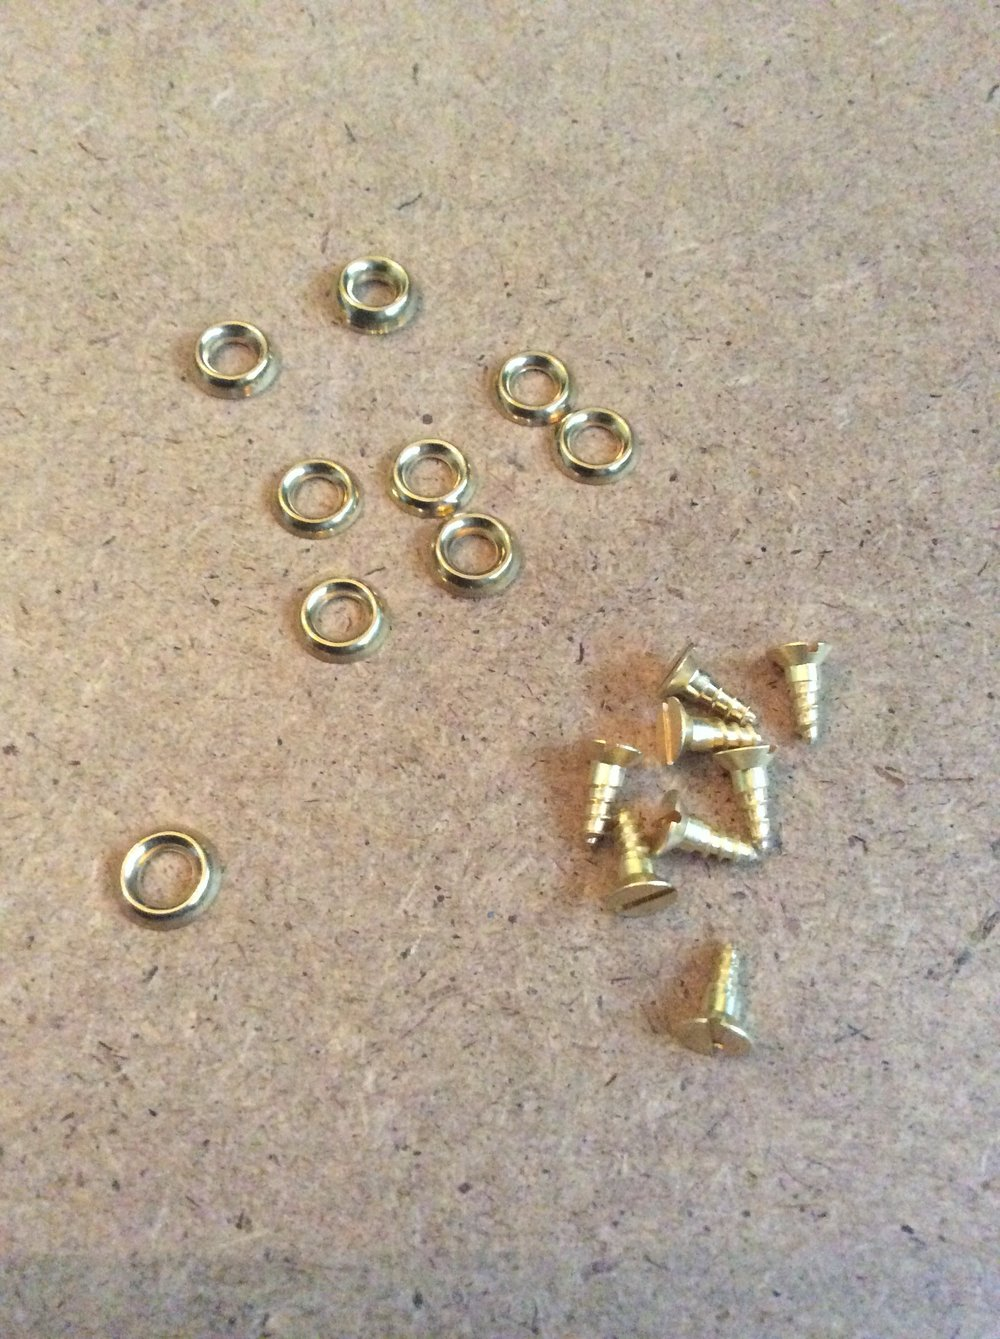 I have used size Number 8 here, but I think they are a bit big, so I'll be using Number 6 in the future. The size of the screws are half inch, which is just enough. Obviously check how far into the wood they will go as we don't want it to come out the other side, and puncture the painting!   Solid Brass Slotted Countersunk Head Wood Screws, No. 8 x 1/2 inch  and  SOLID BRASS CUP WASHERS SURFACE FINISHING COUNTERSUNK SCREWS, No. 8